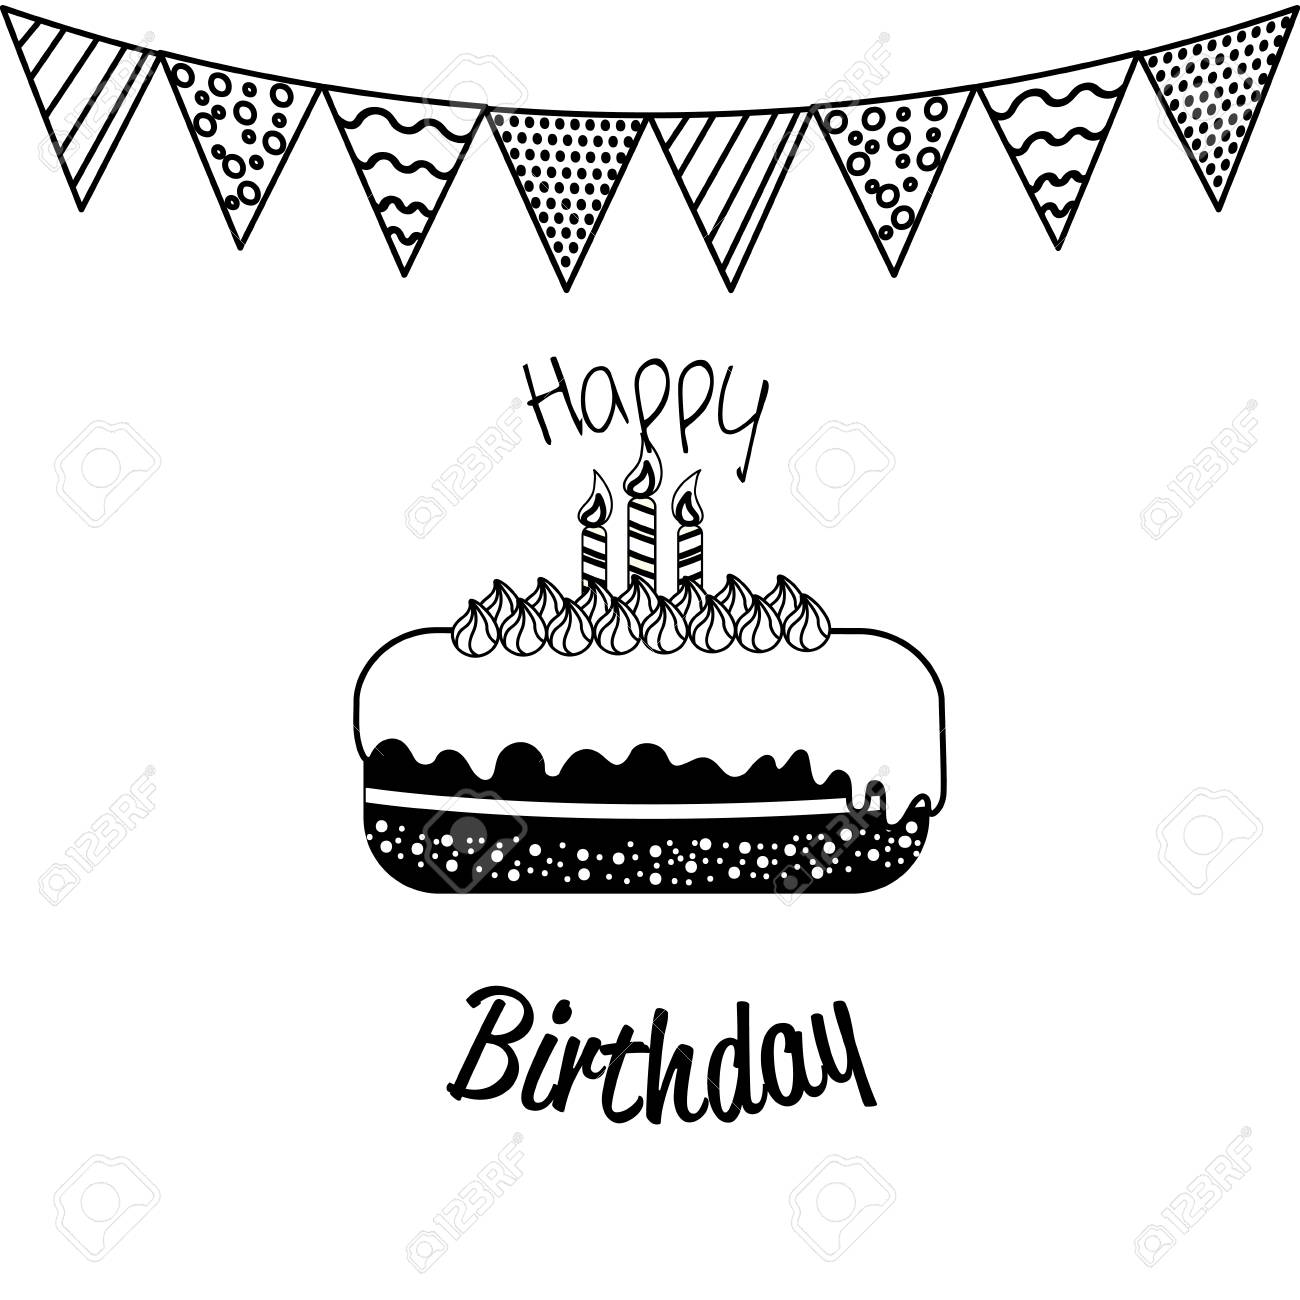 Happy Birthday Decoration With Cake And Candles Royalty Free